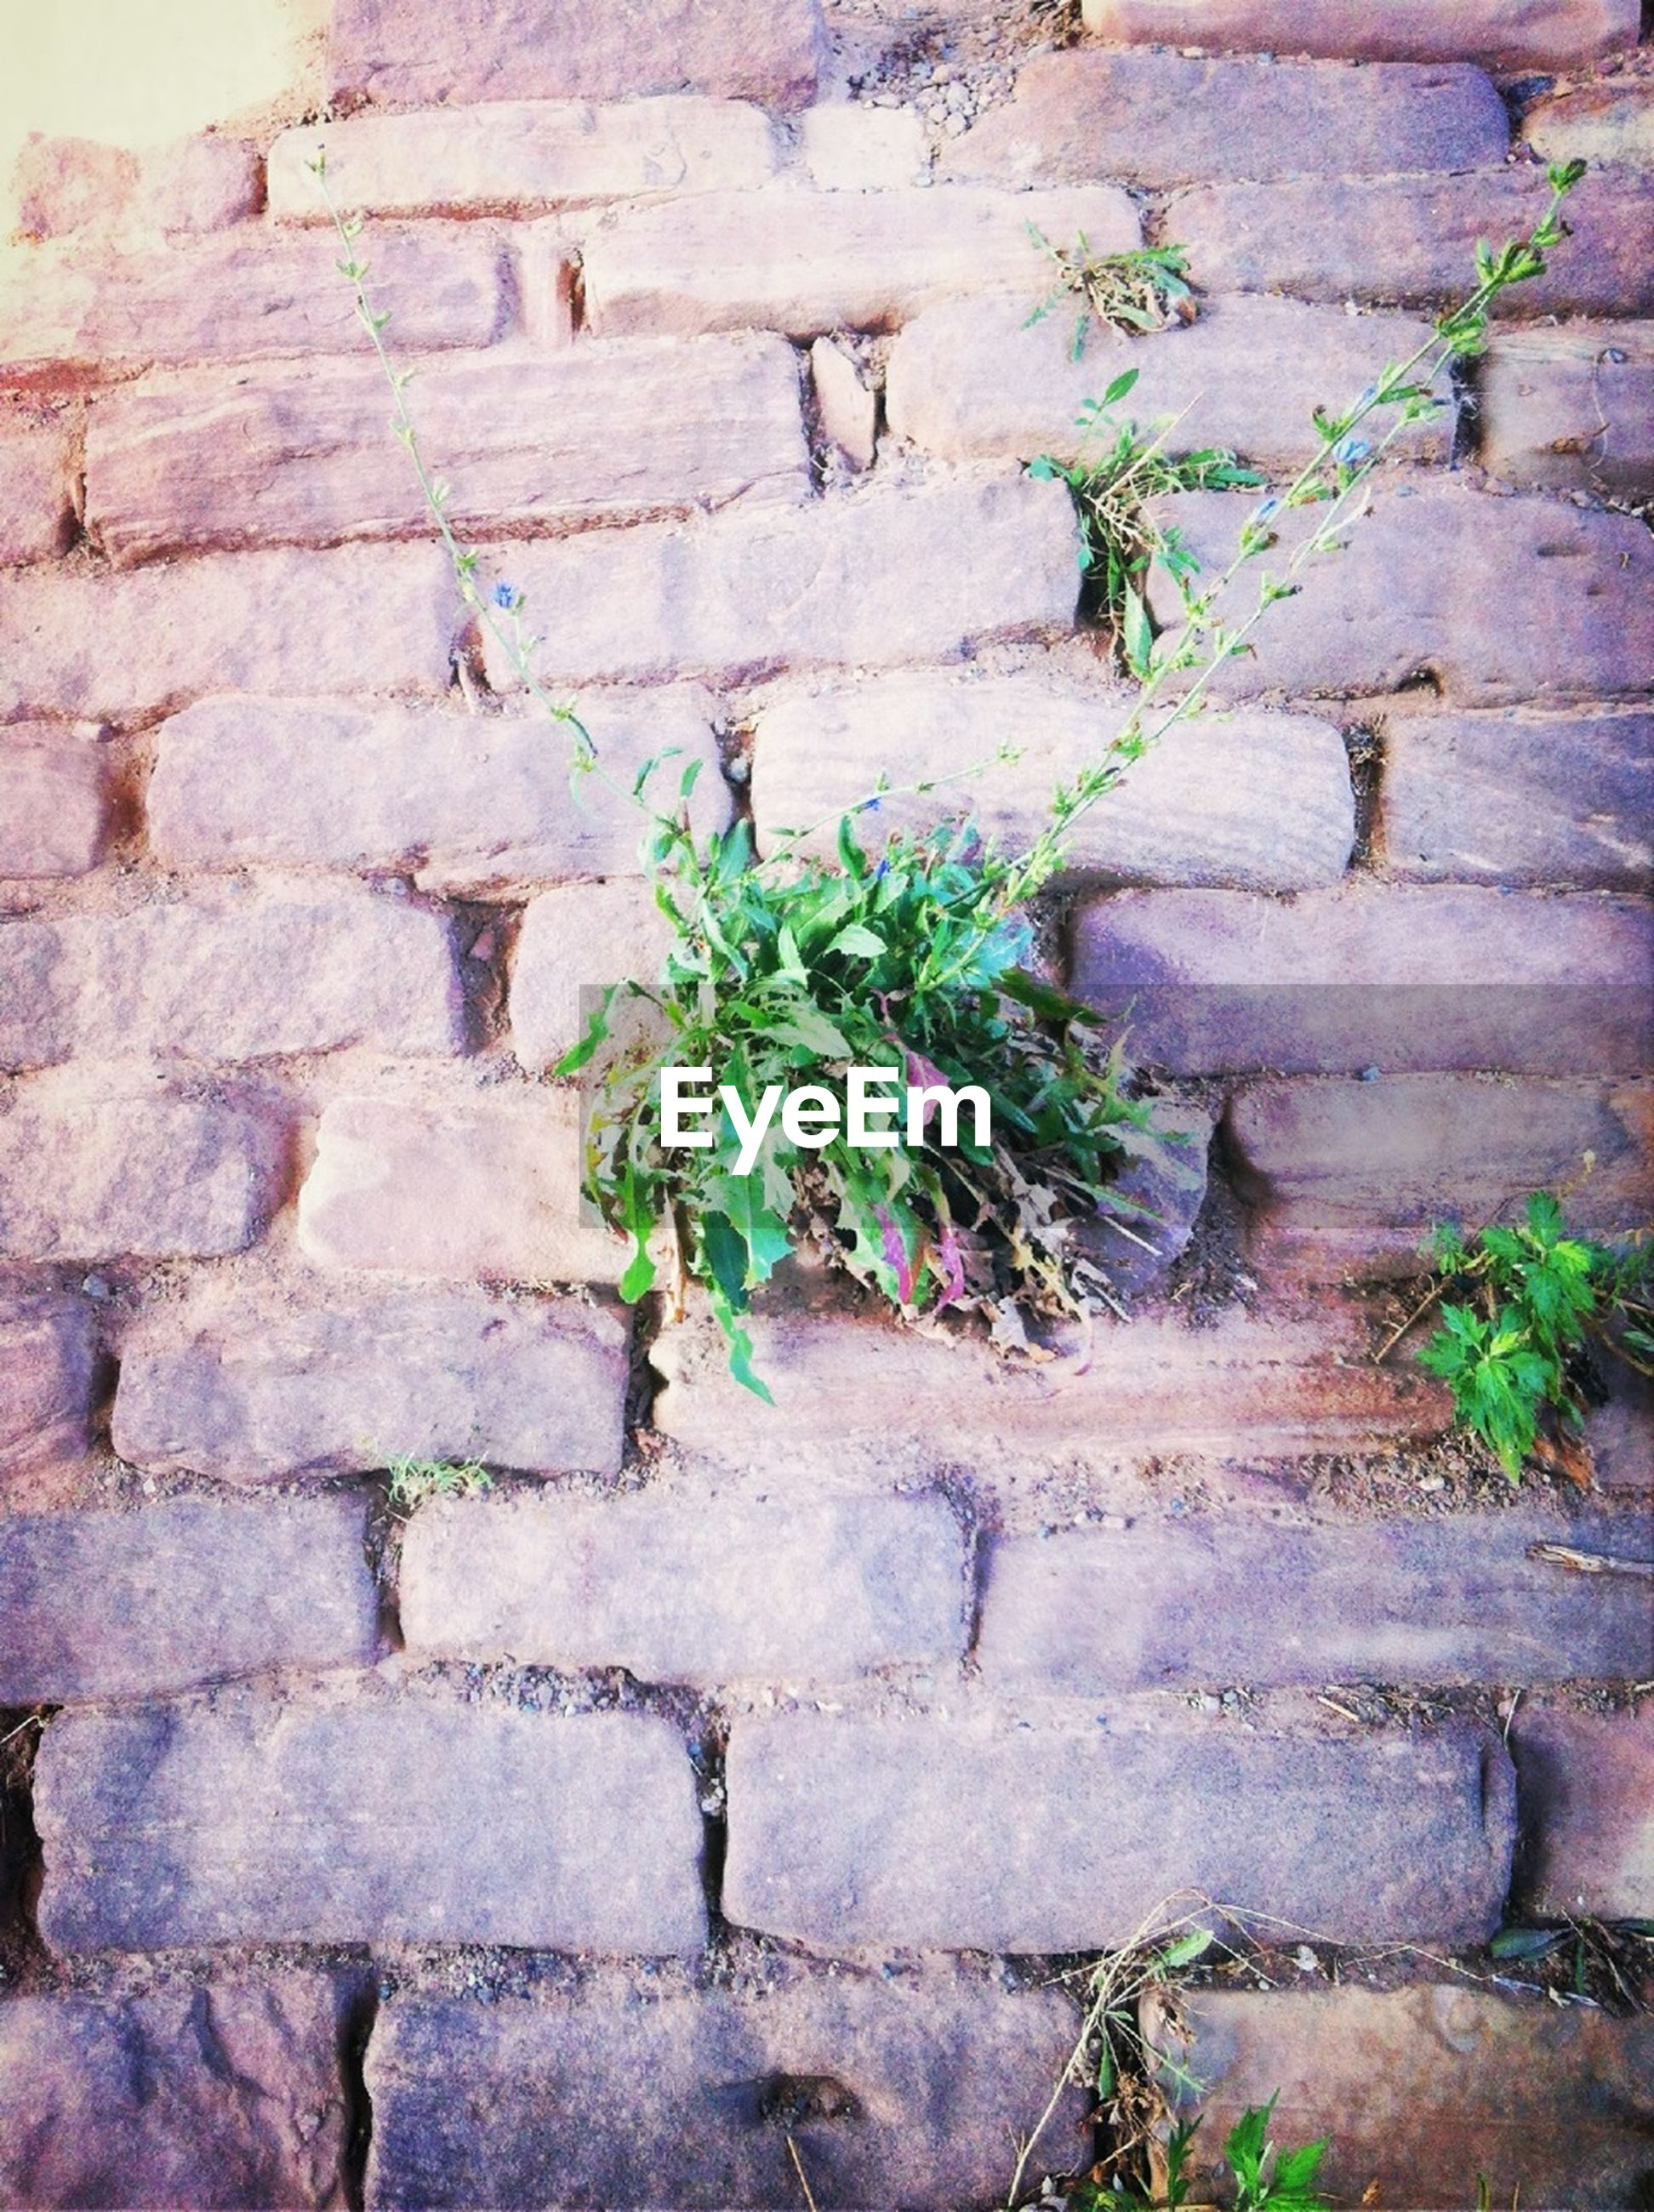 plant, stone wall, brick wall, wall - building feature, growth, built structure, architecture, growing, wall, building exterior, ivy, green color, textured, leaf, old, day, weathered, nature, outdoors, no people